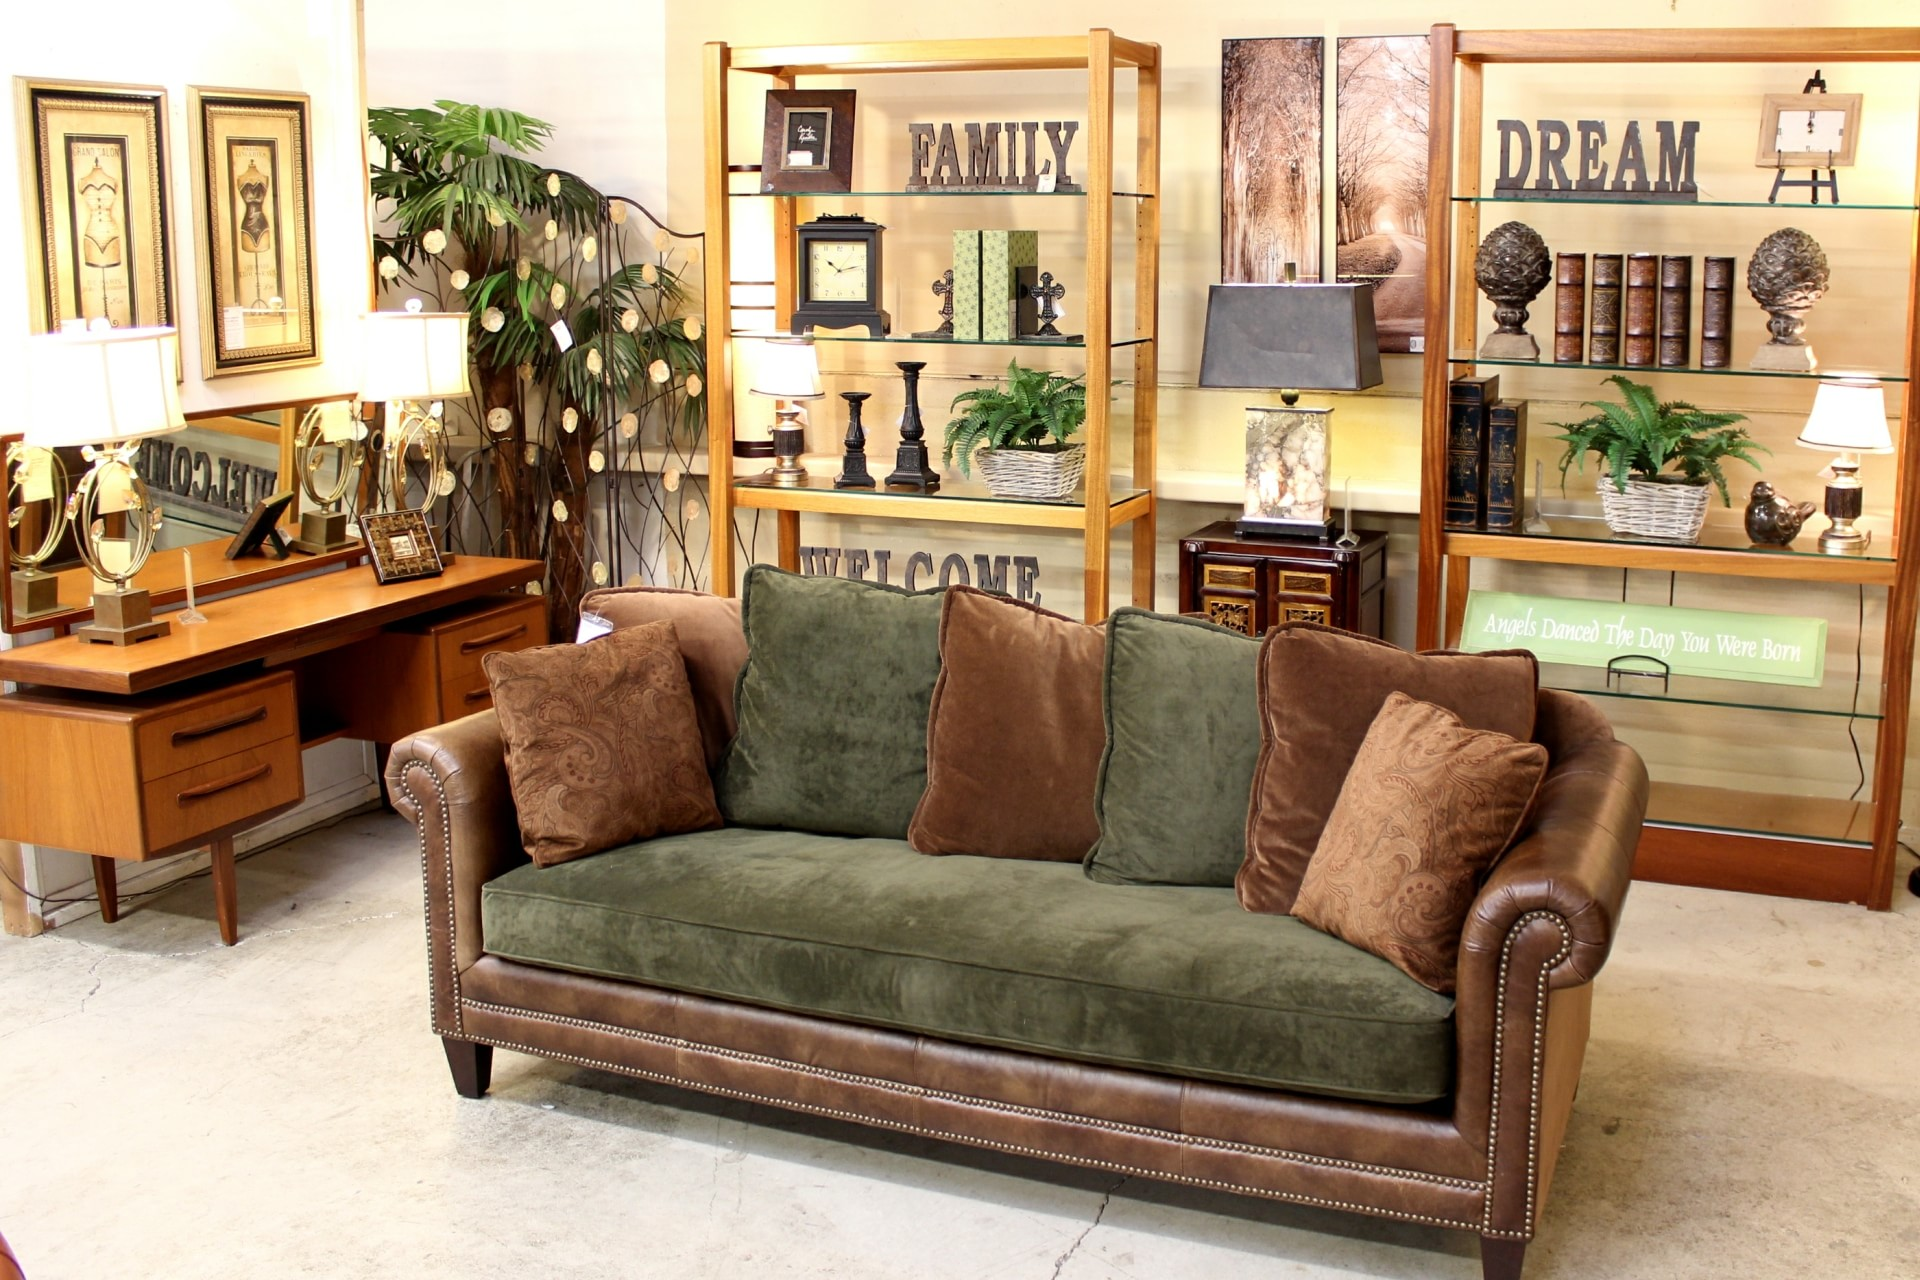 Upscale consignment upscale used furniture decor for Home decor outlet near me